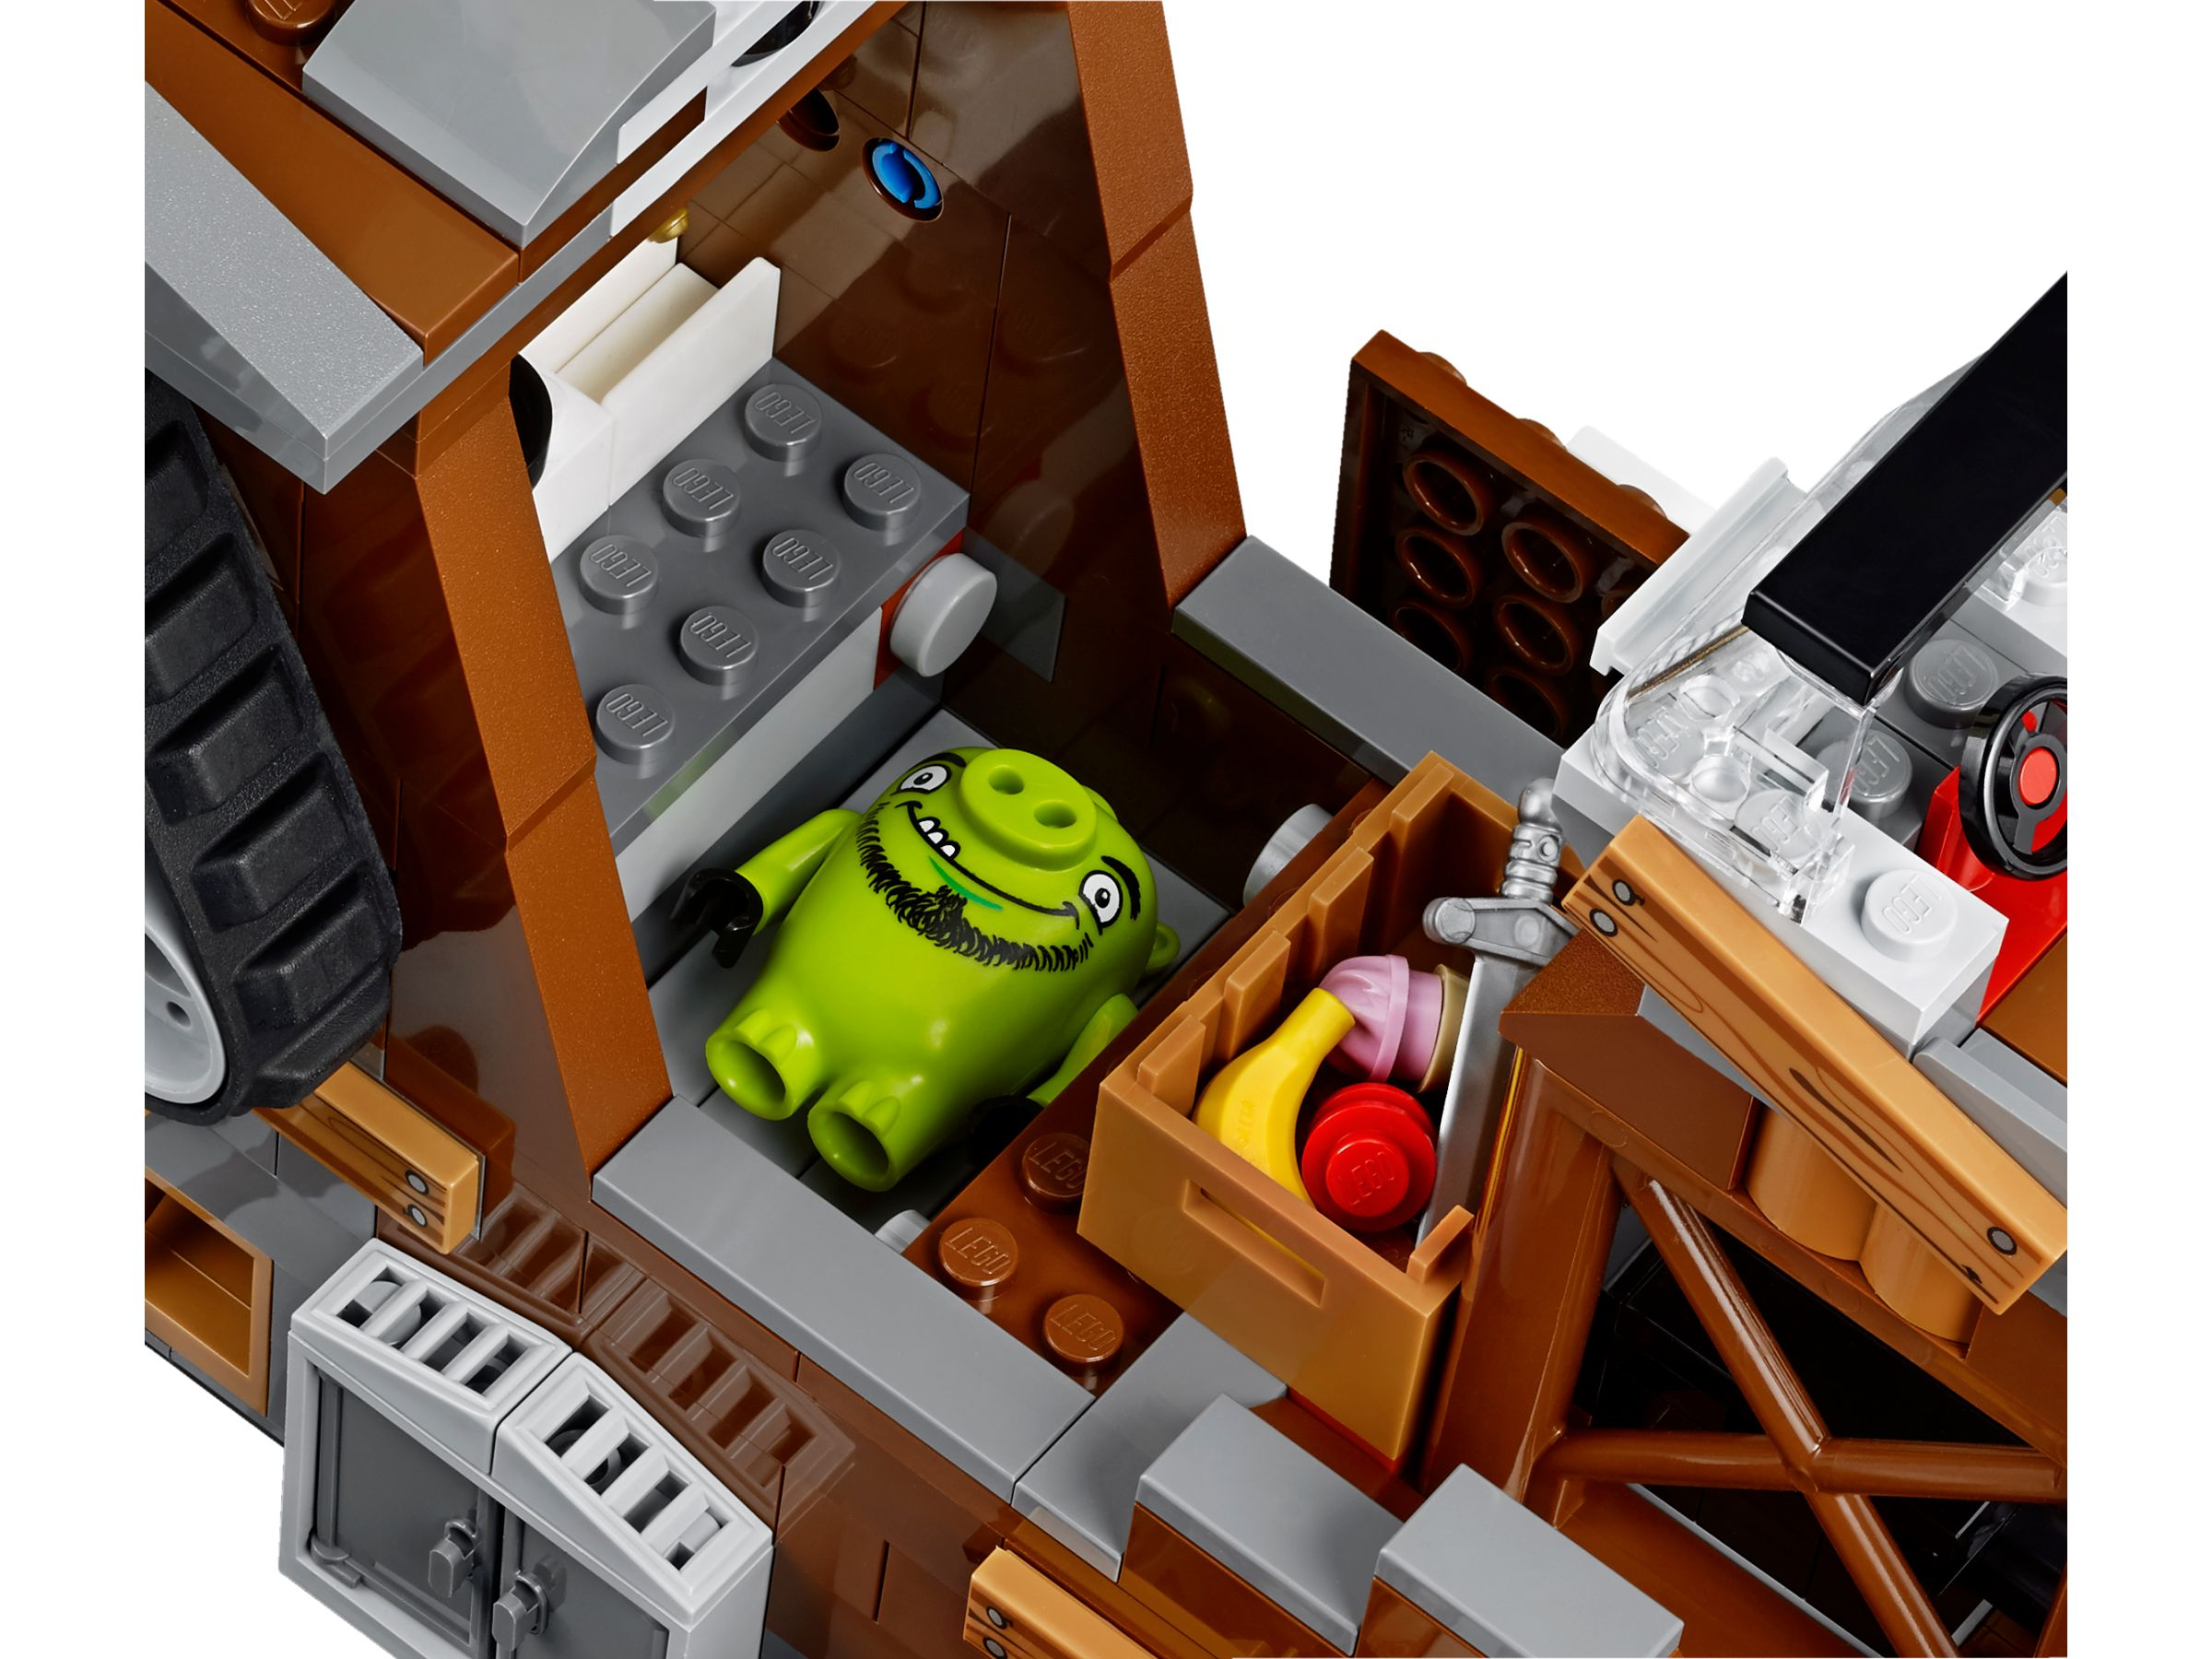 LEGO Angry Birds 75825 Piggy Pirate Ship LEGO_75825_alt5.jpg